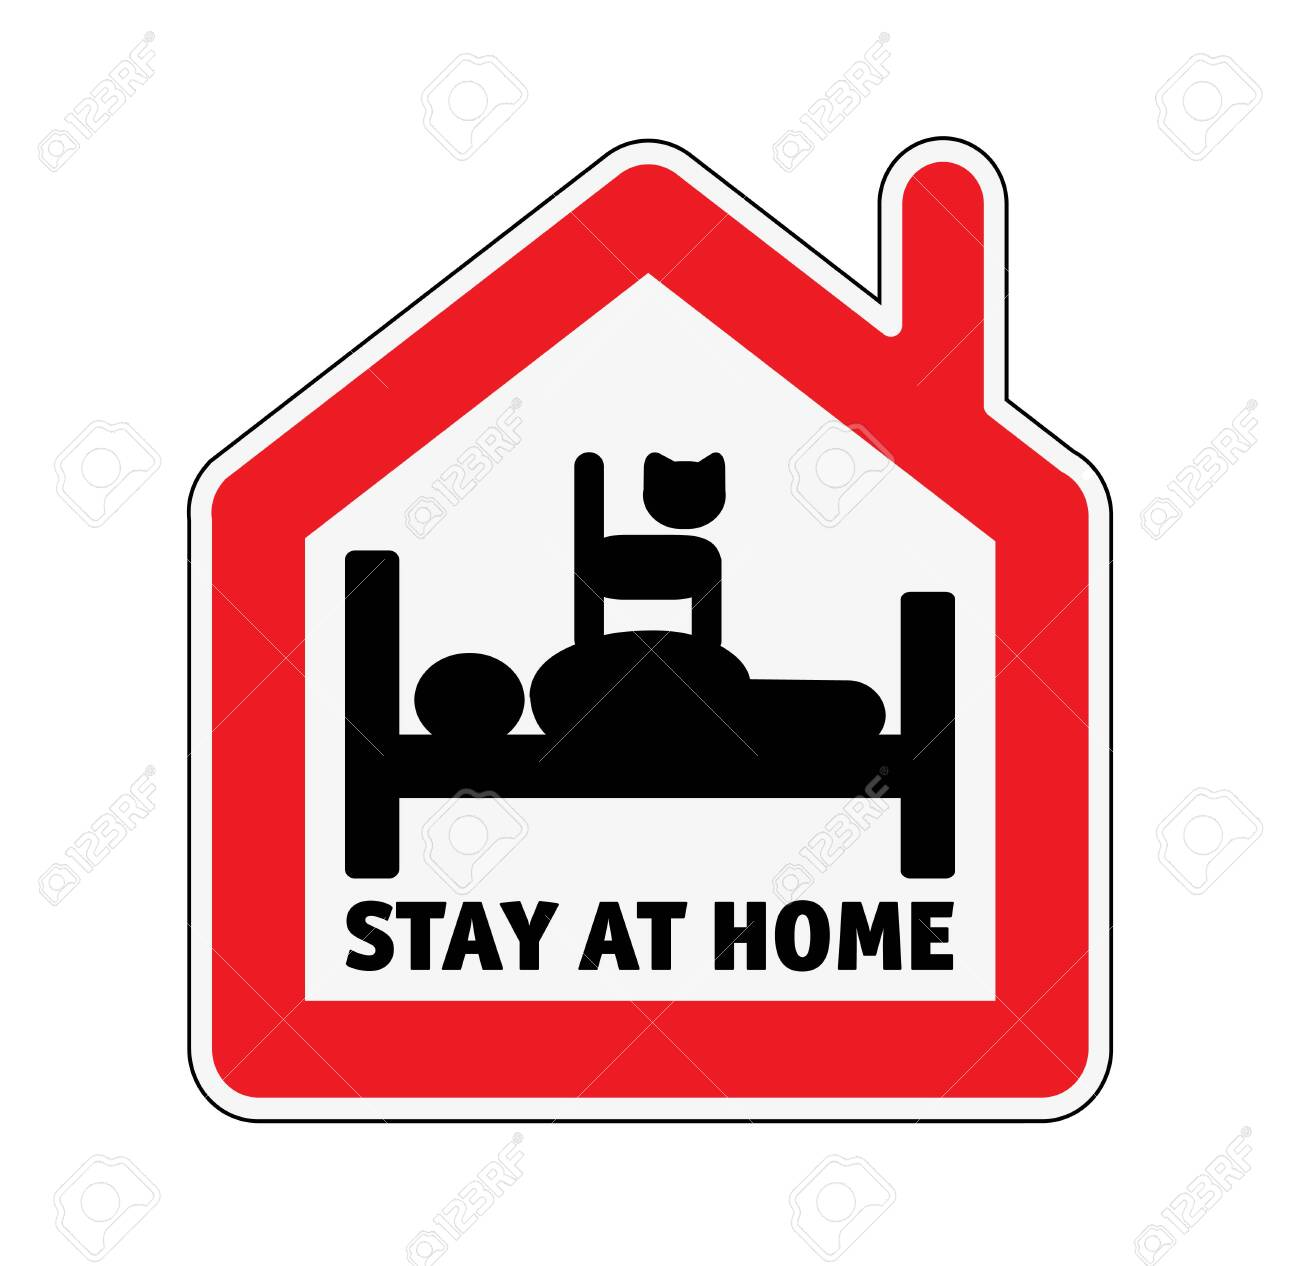 charlottedesignarchitect: Should Men Stay In The Home